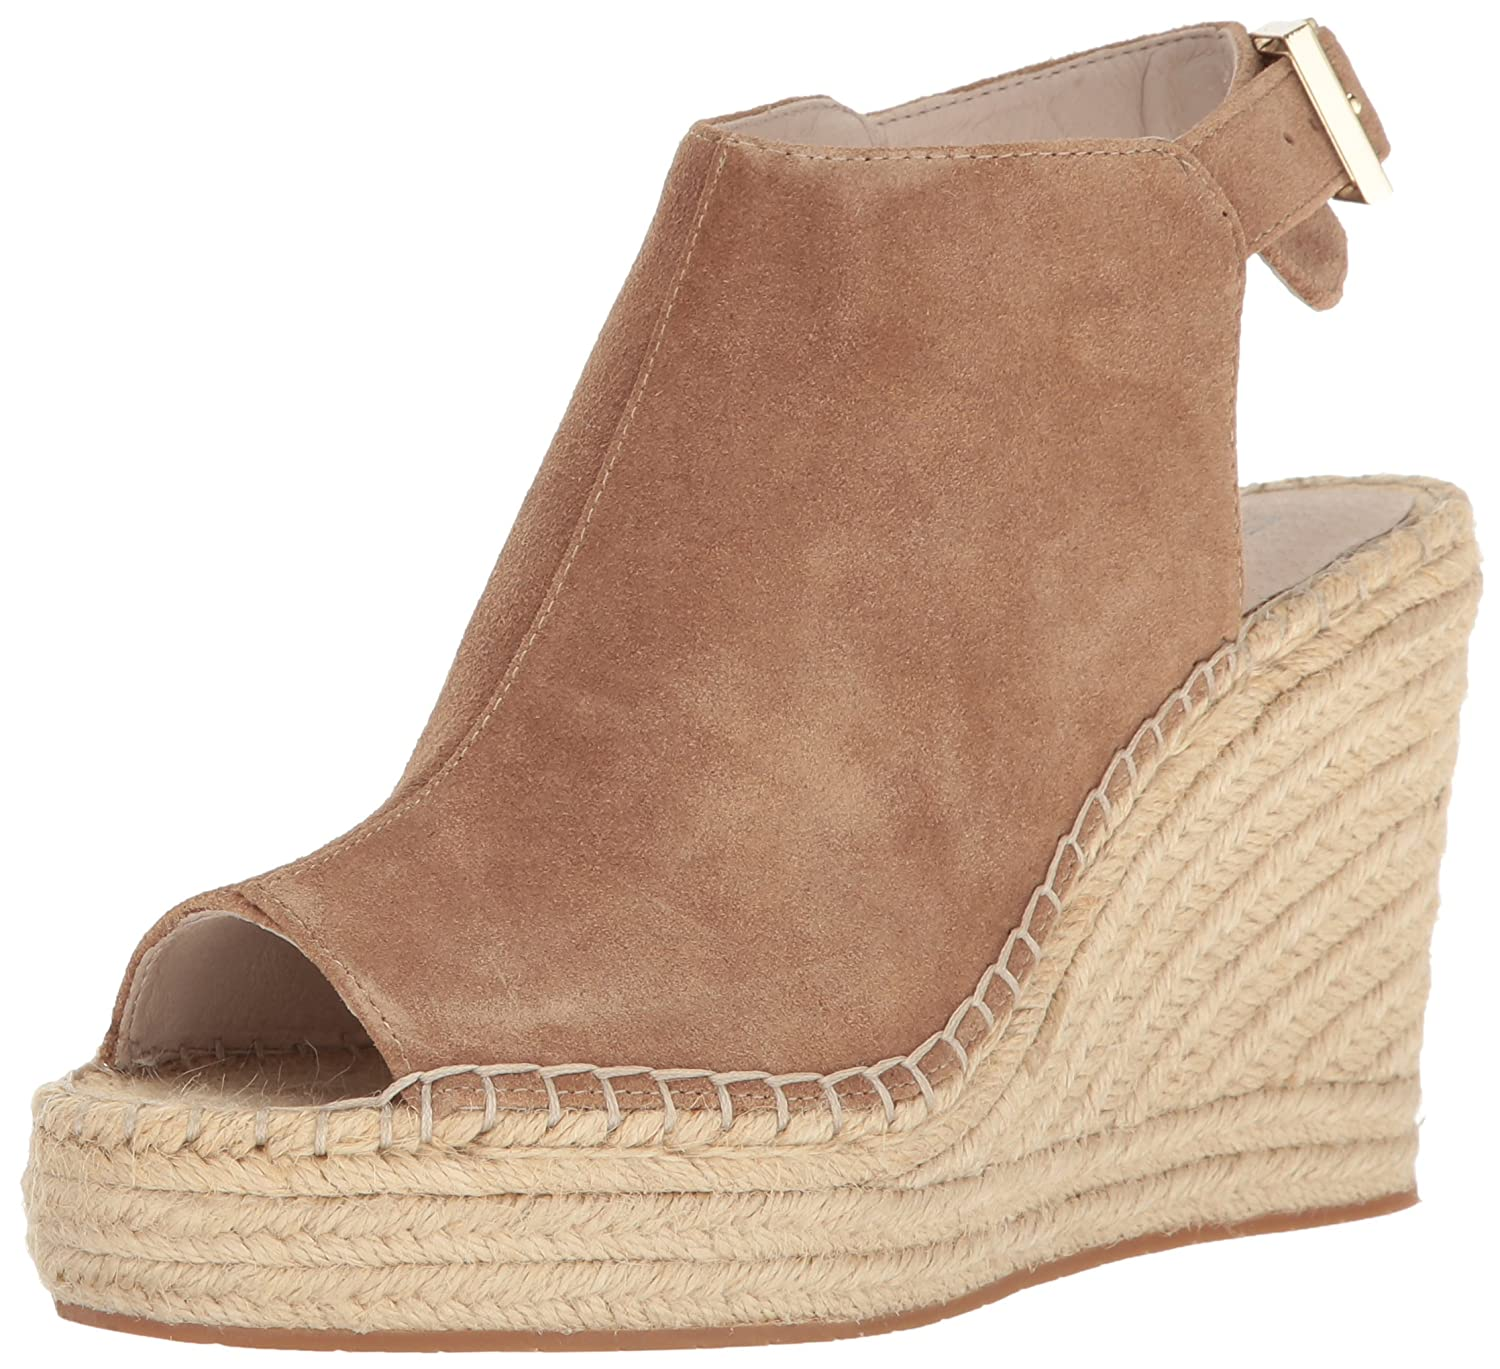 a74e07a03240 high-quality Kenneth Cole New York Women s Olivia Espadrille Wedge Sandal